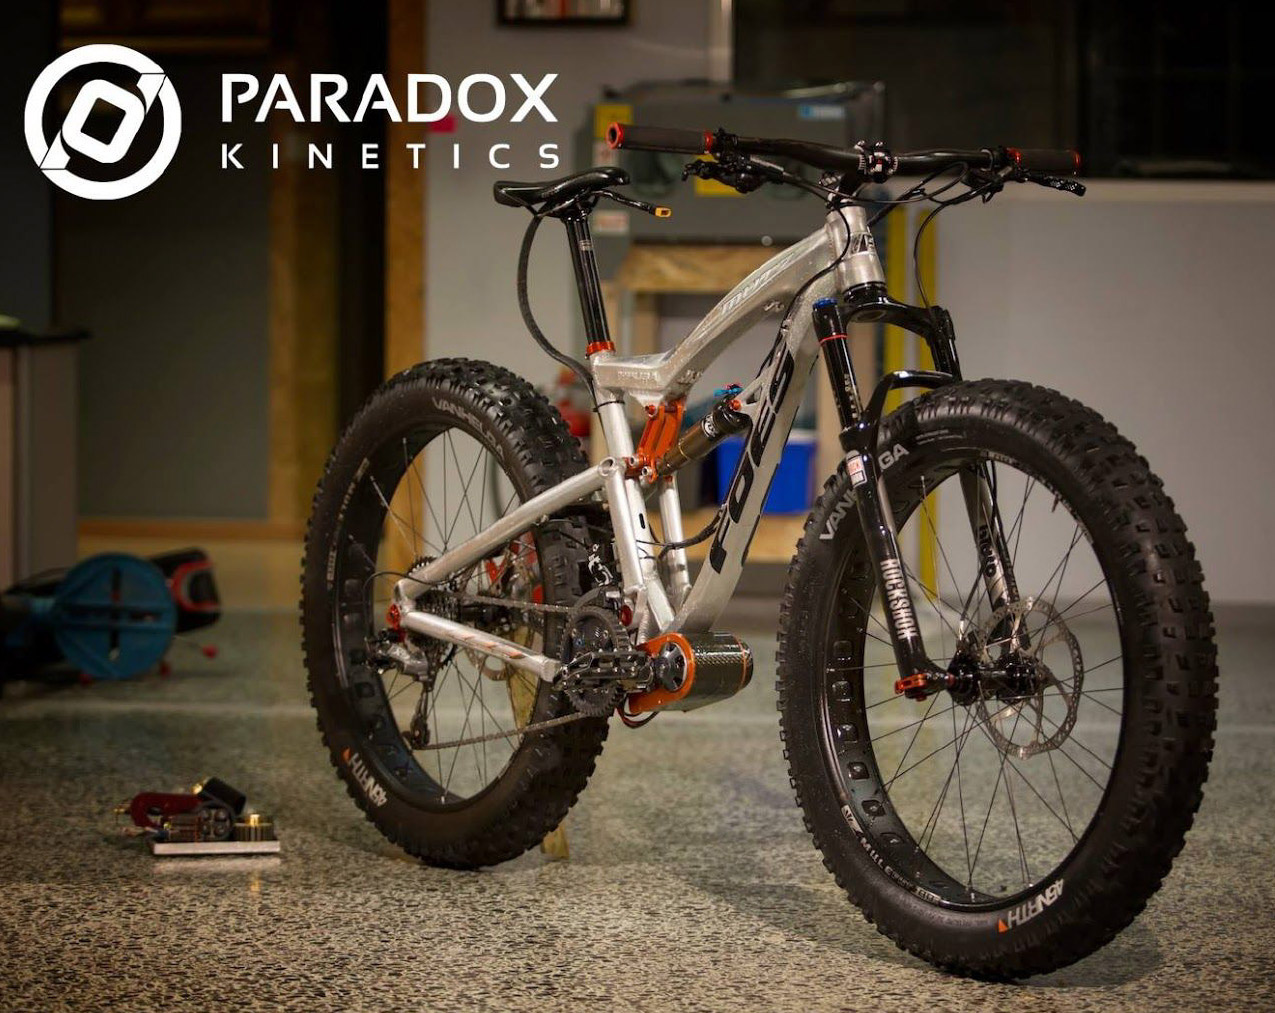 paradox-kinetics_bike_3a-1.jpg